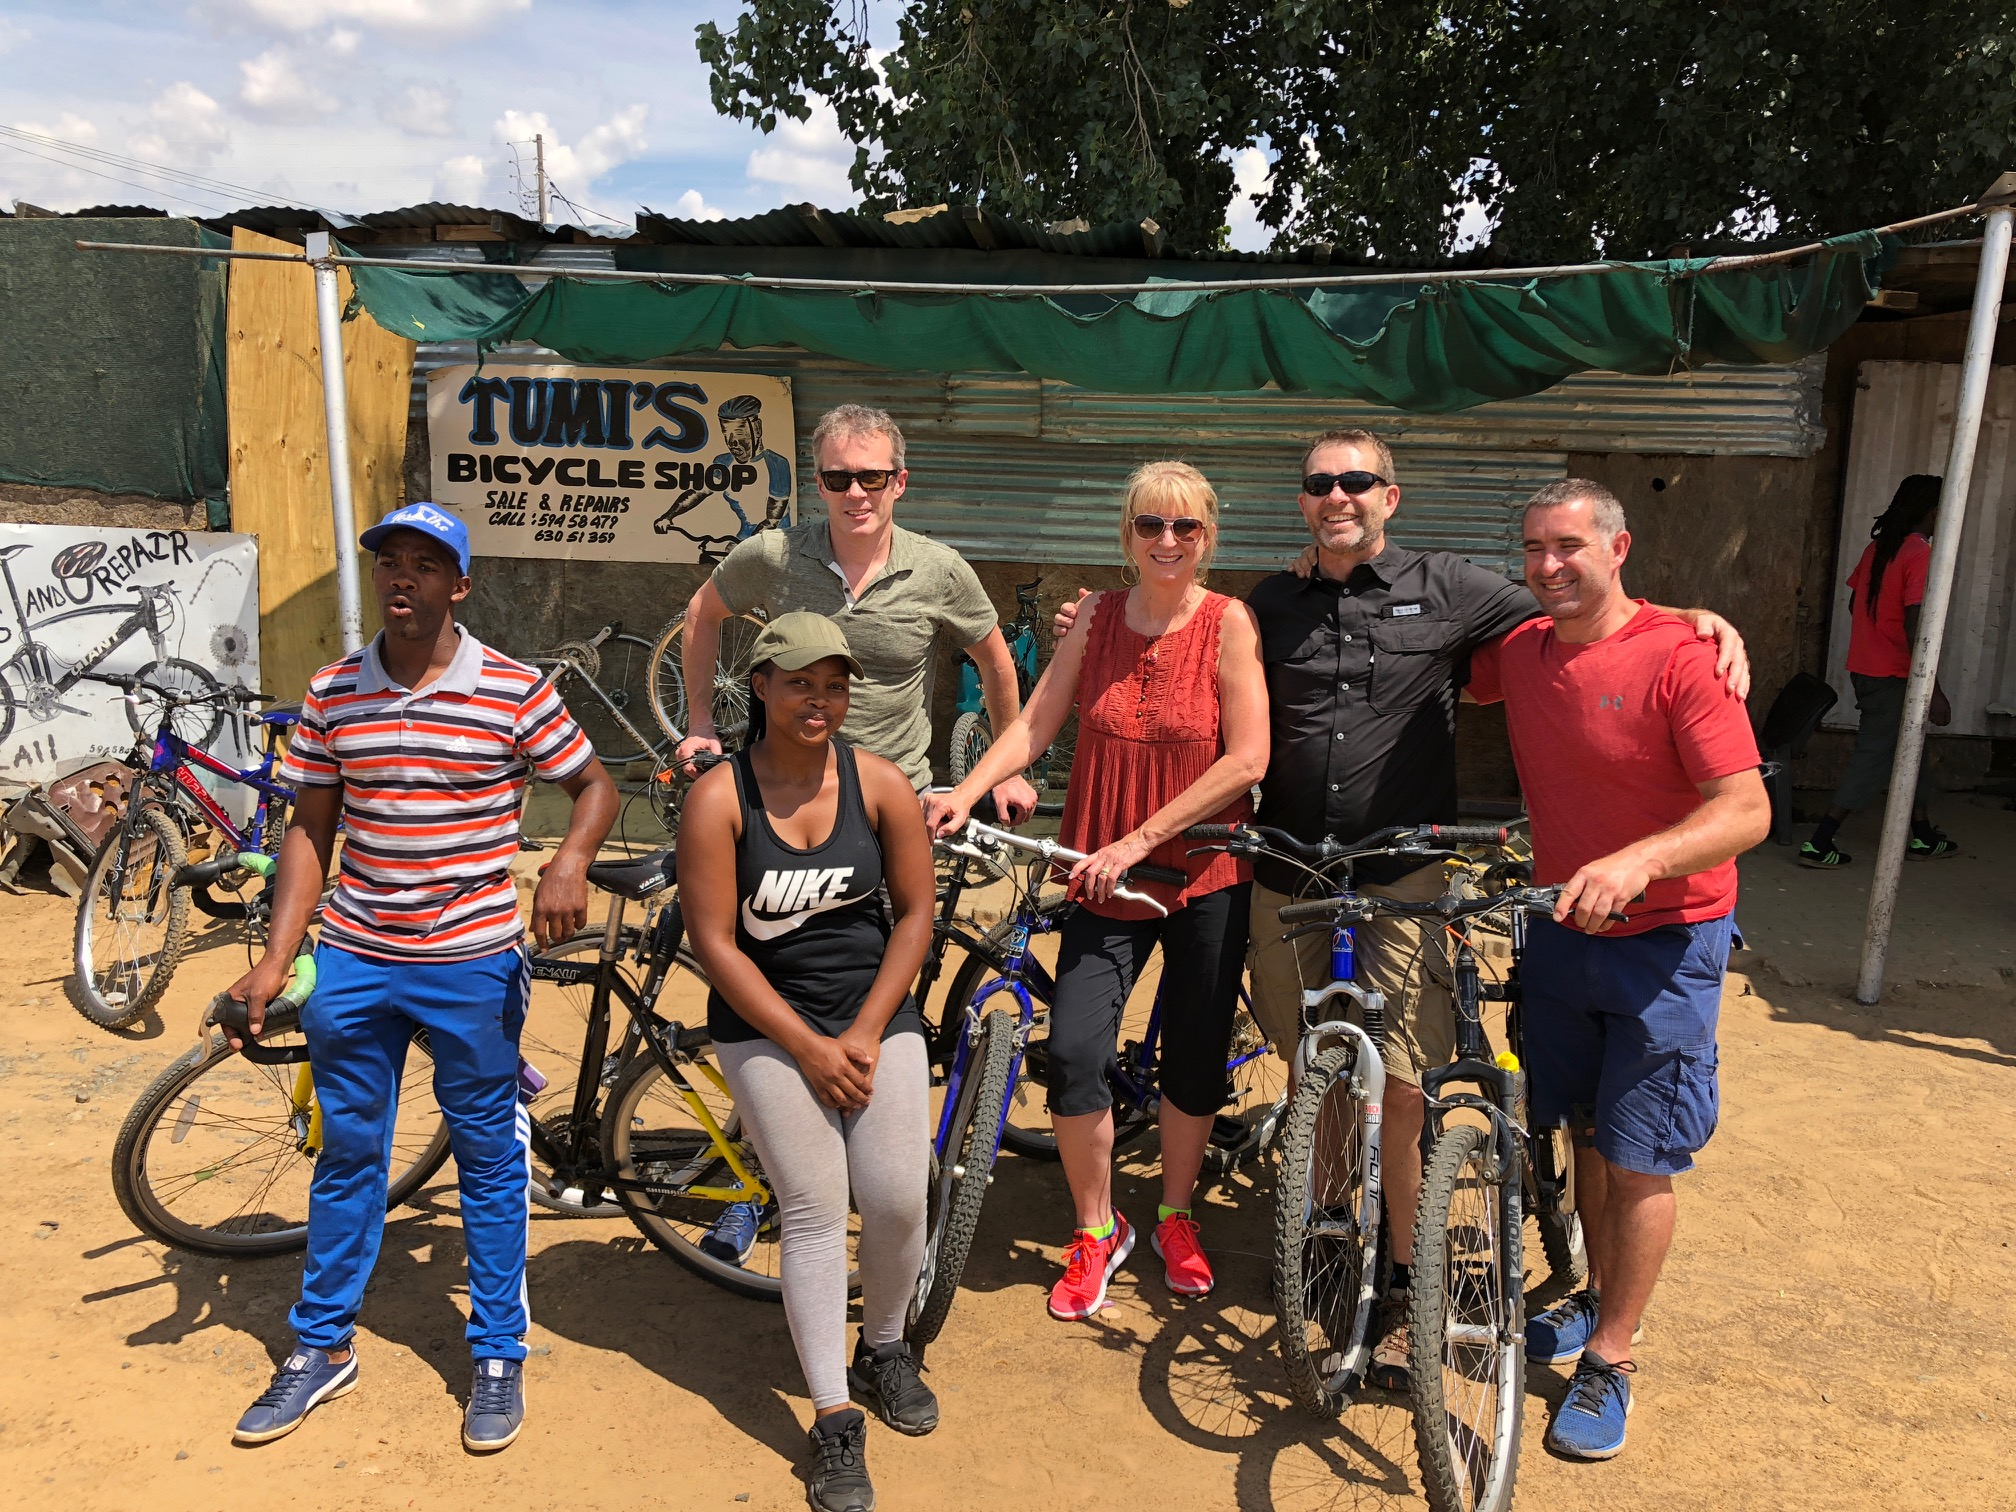 DELIVERING BIKES - Ken, Mike's Bikes CEO, with Mike & Debbe, Bicycle Warehouse Owners, visiting Tumi's Bicycle Shop, one of Mike's Bikes Sister Shops, in Lesotho during their recent trip delivering bikes.